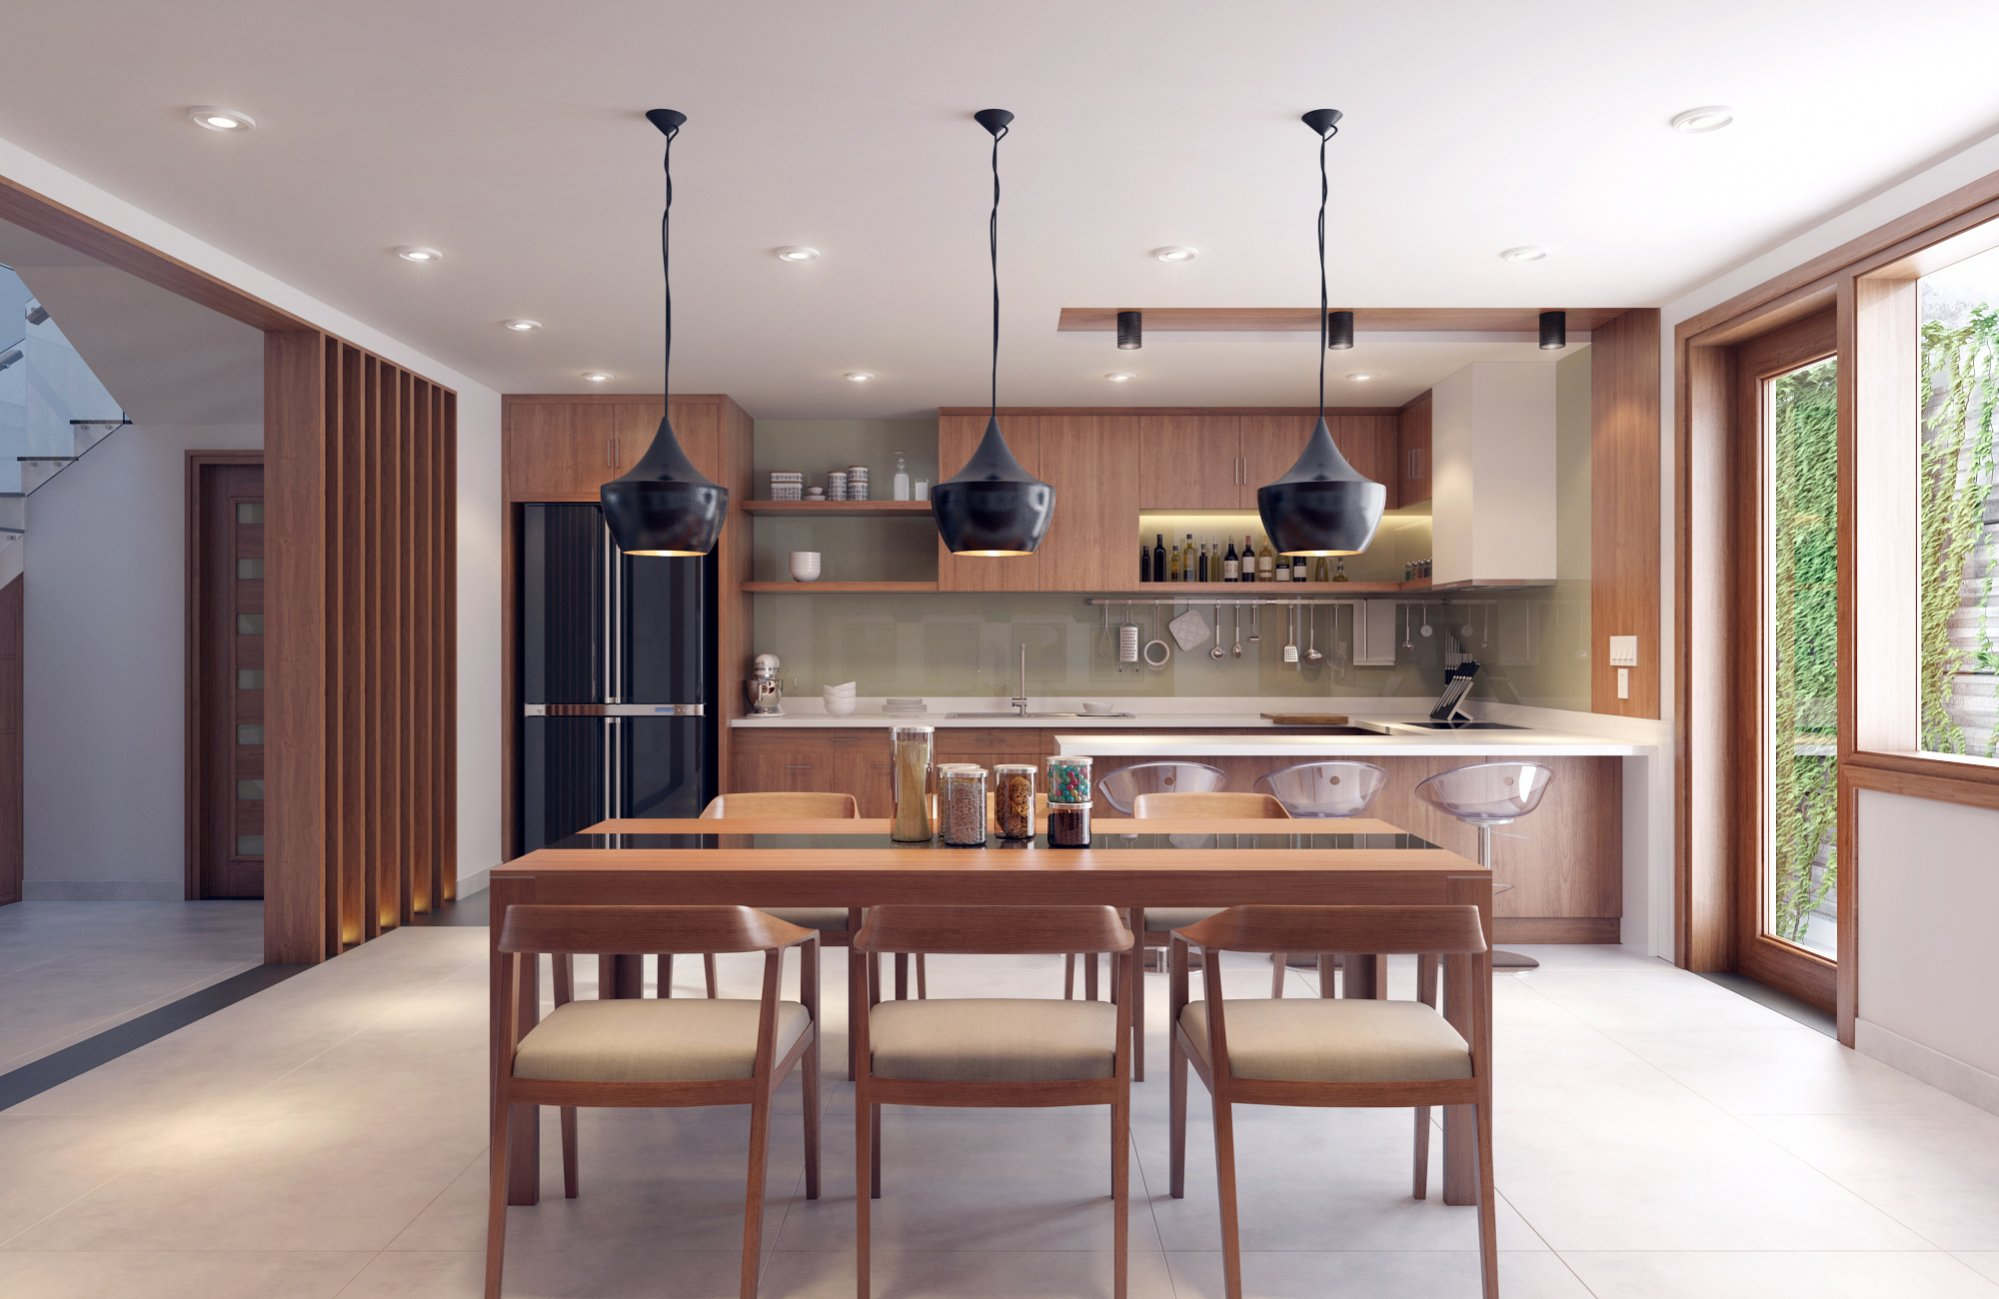 Interior Design Close To Nature: Rich Wood Themes And ... on Comfortable Living  id=47076